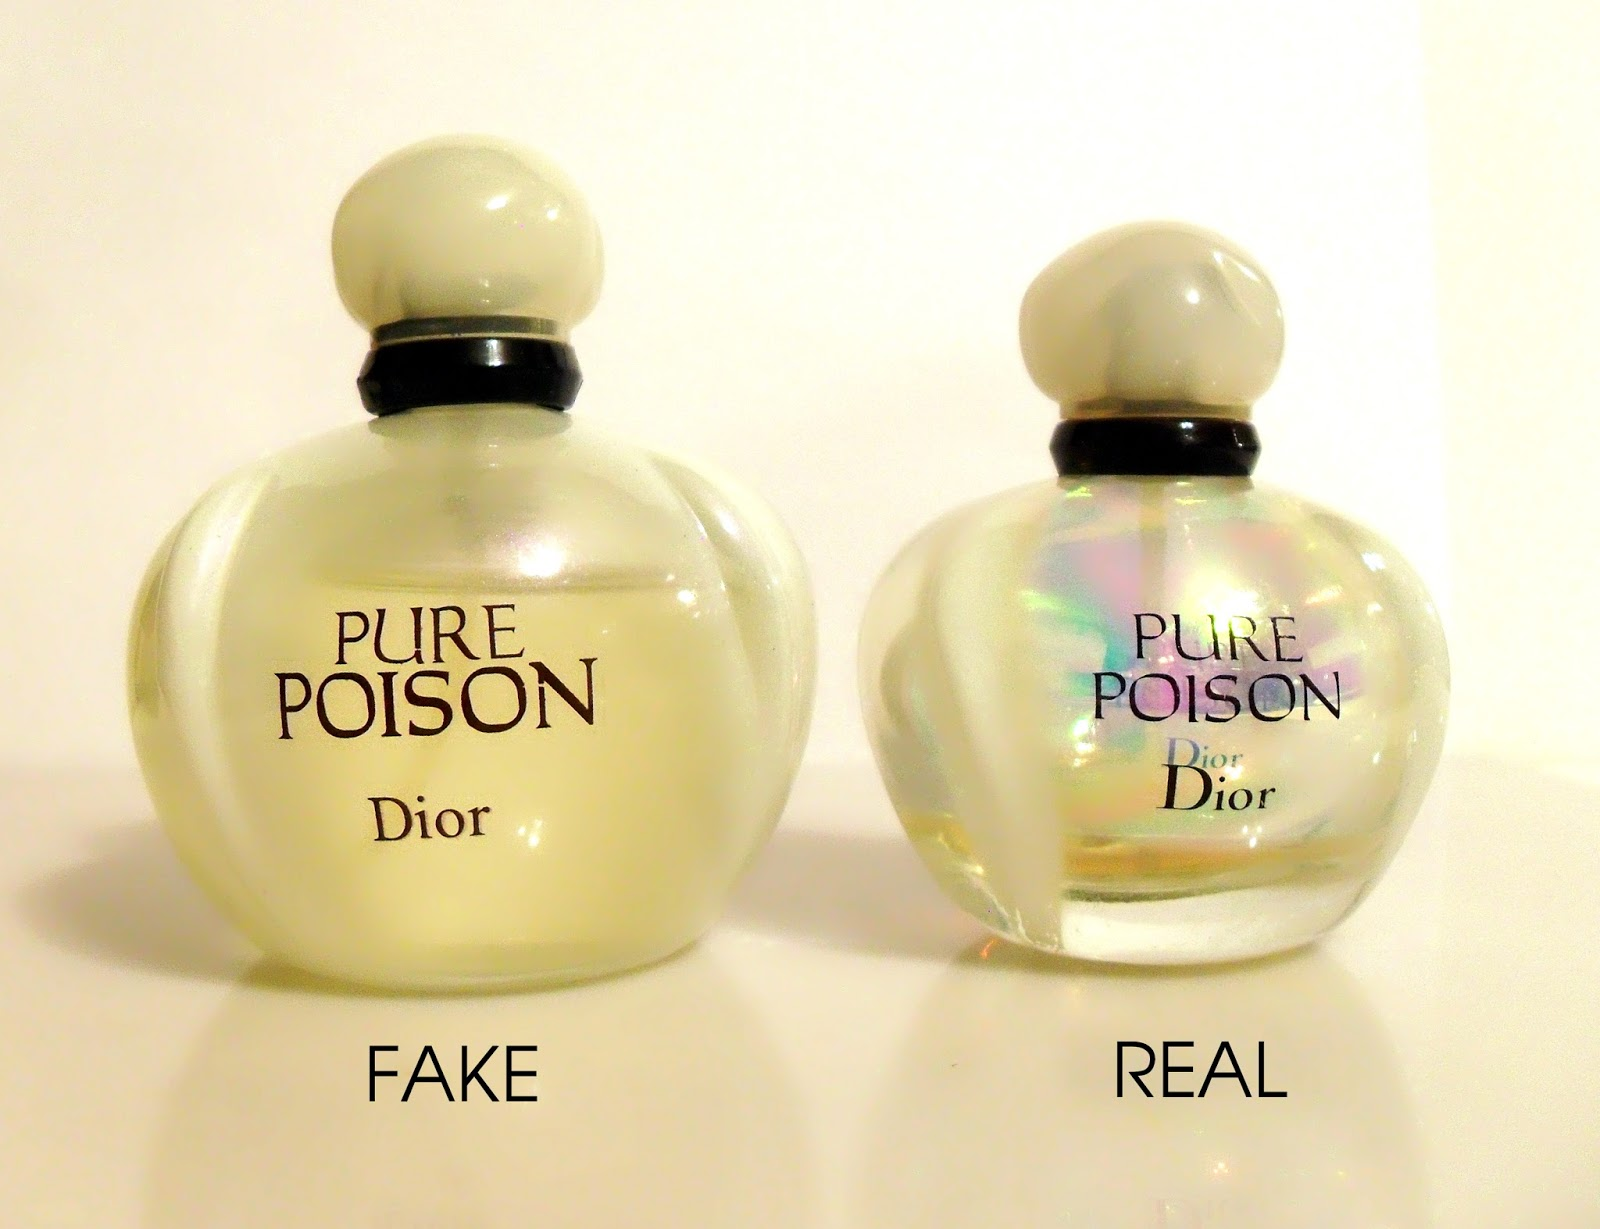 I HATE FAKE PERFUME!: Fake Poison Perfumes by Christian Dior